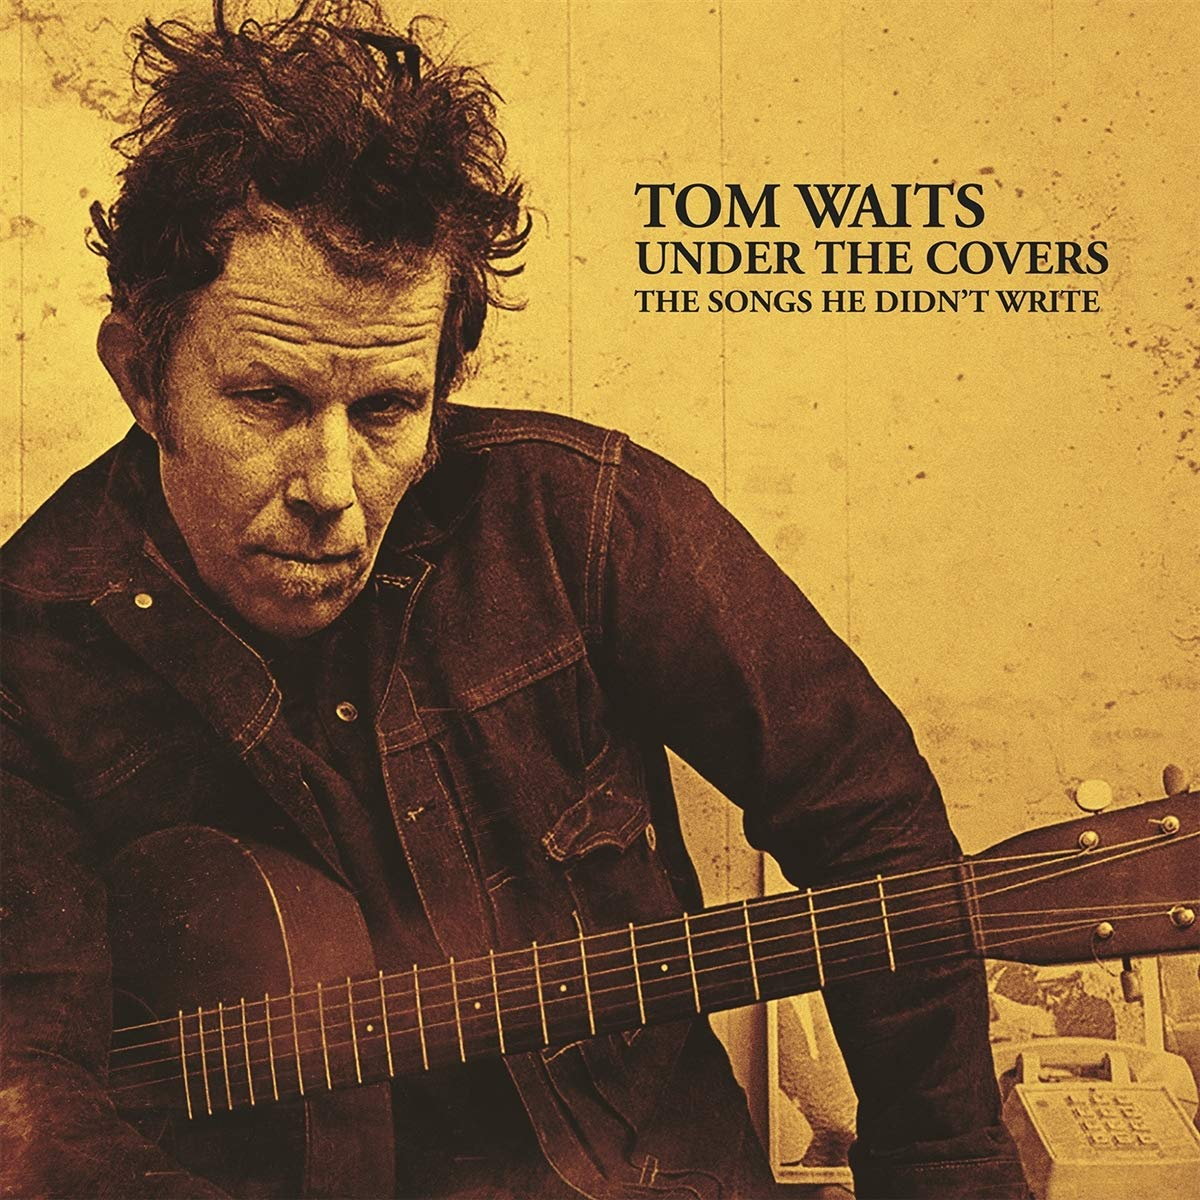 Tom Waits - Under the Covers (Vinyl 2LP)